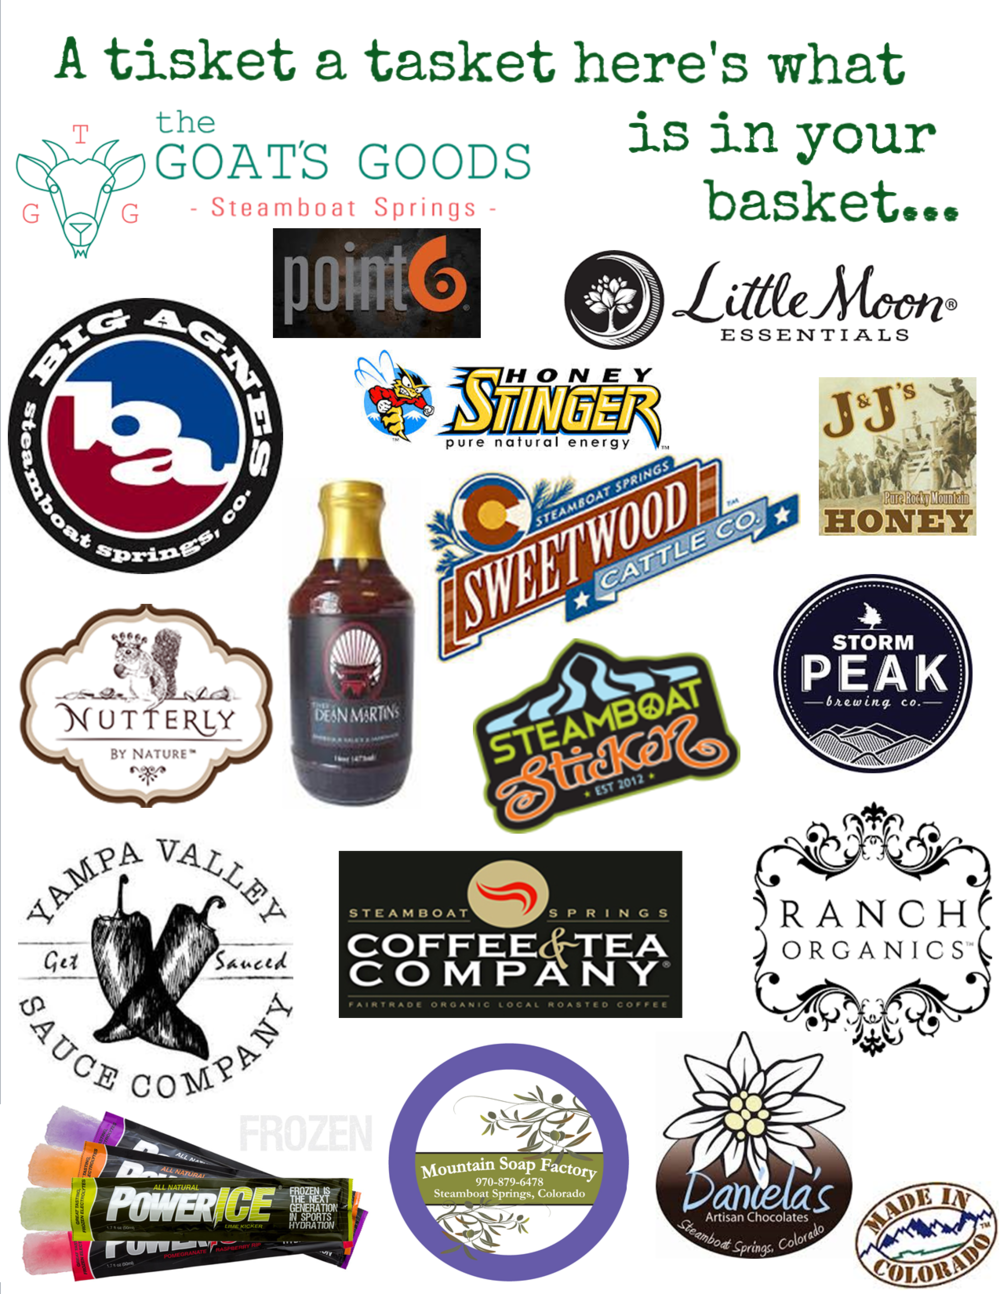 Expect to see newly handpicked local favorites added to the baskets often...